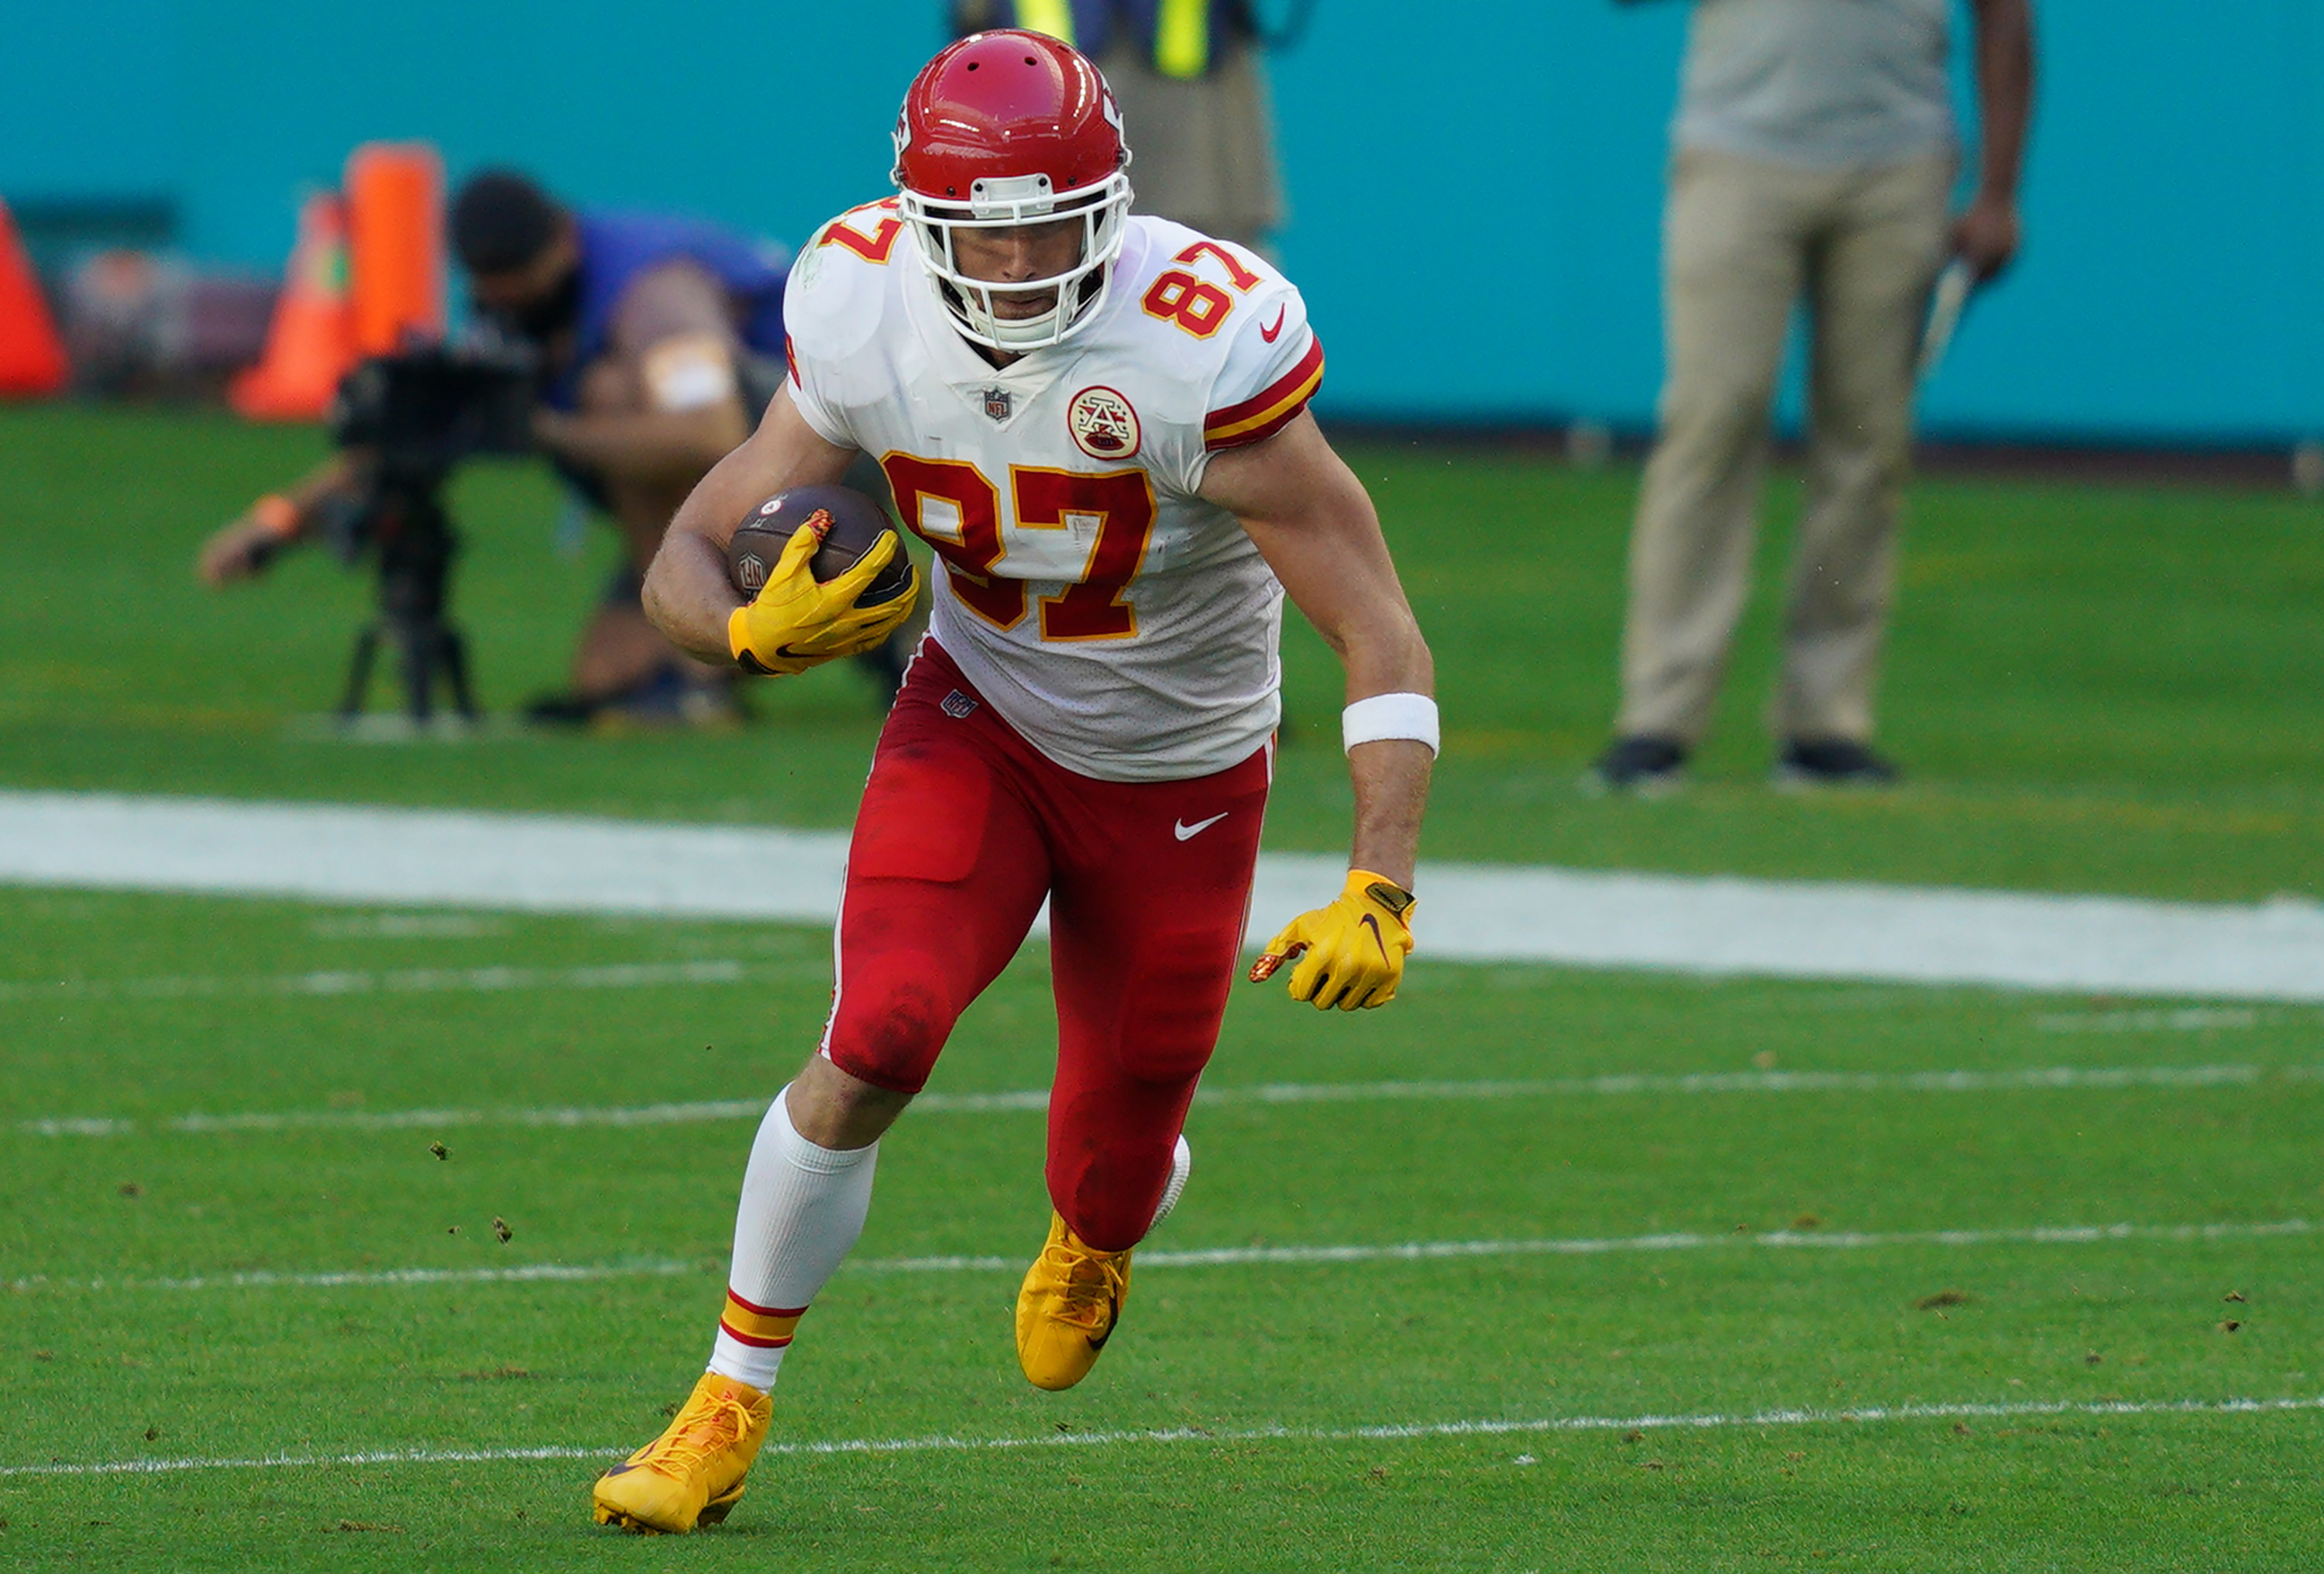 While Kansas City Chiefs tight end Travis Kelce has made millions in the pros, he used to earn $8 an hour.